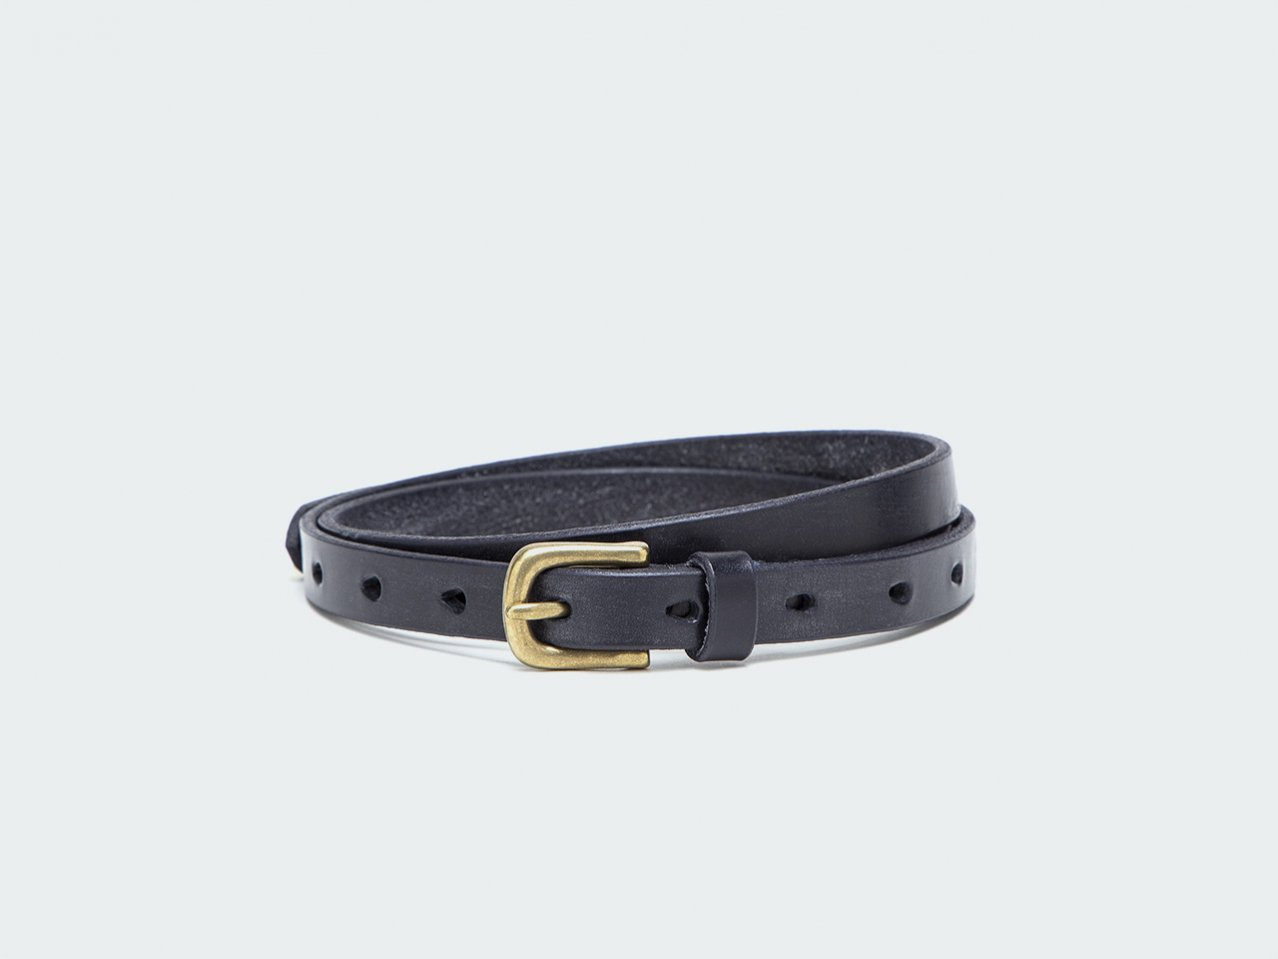 NARROW STANDARD (Bridle) 15 / NAVY